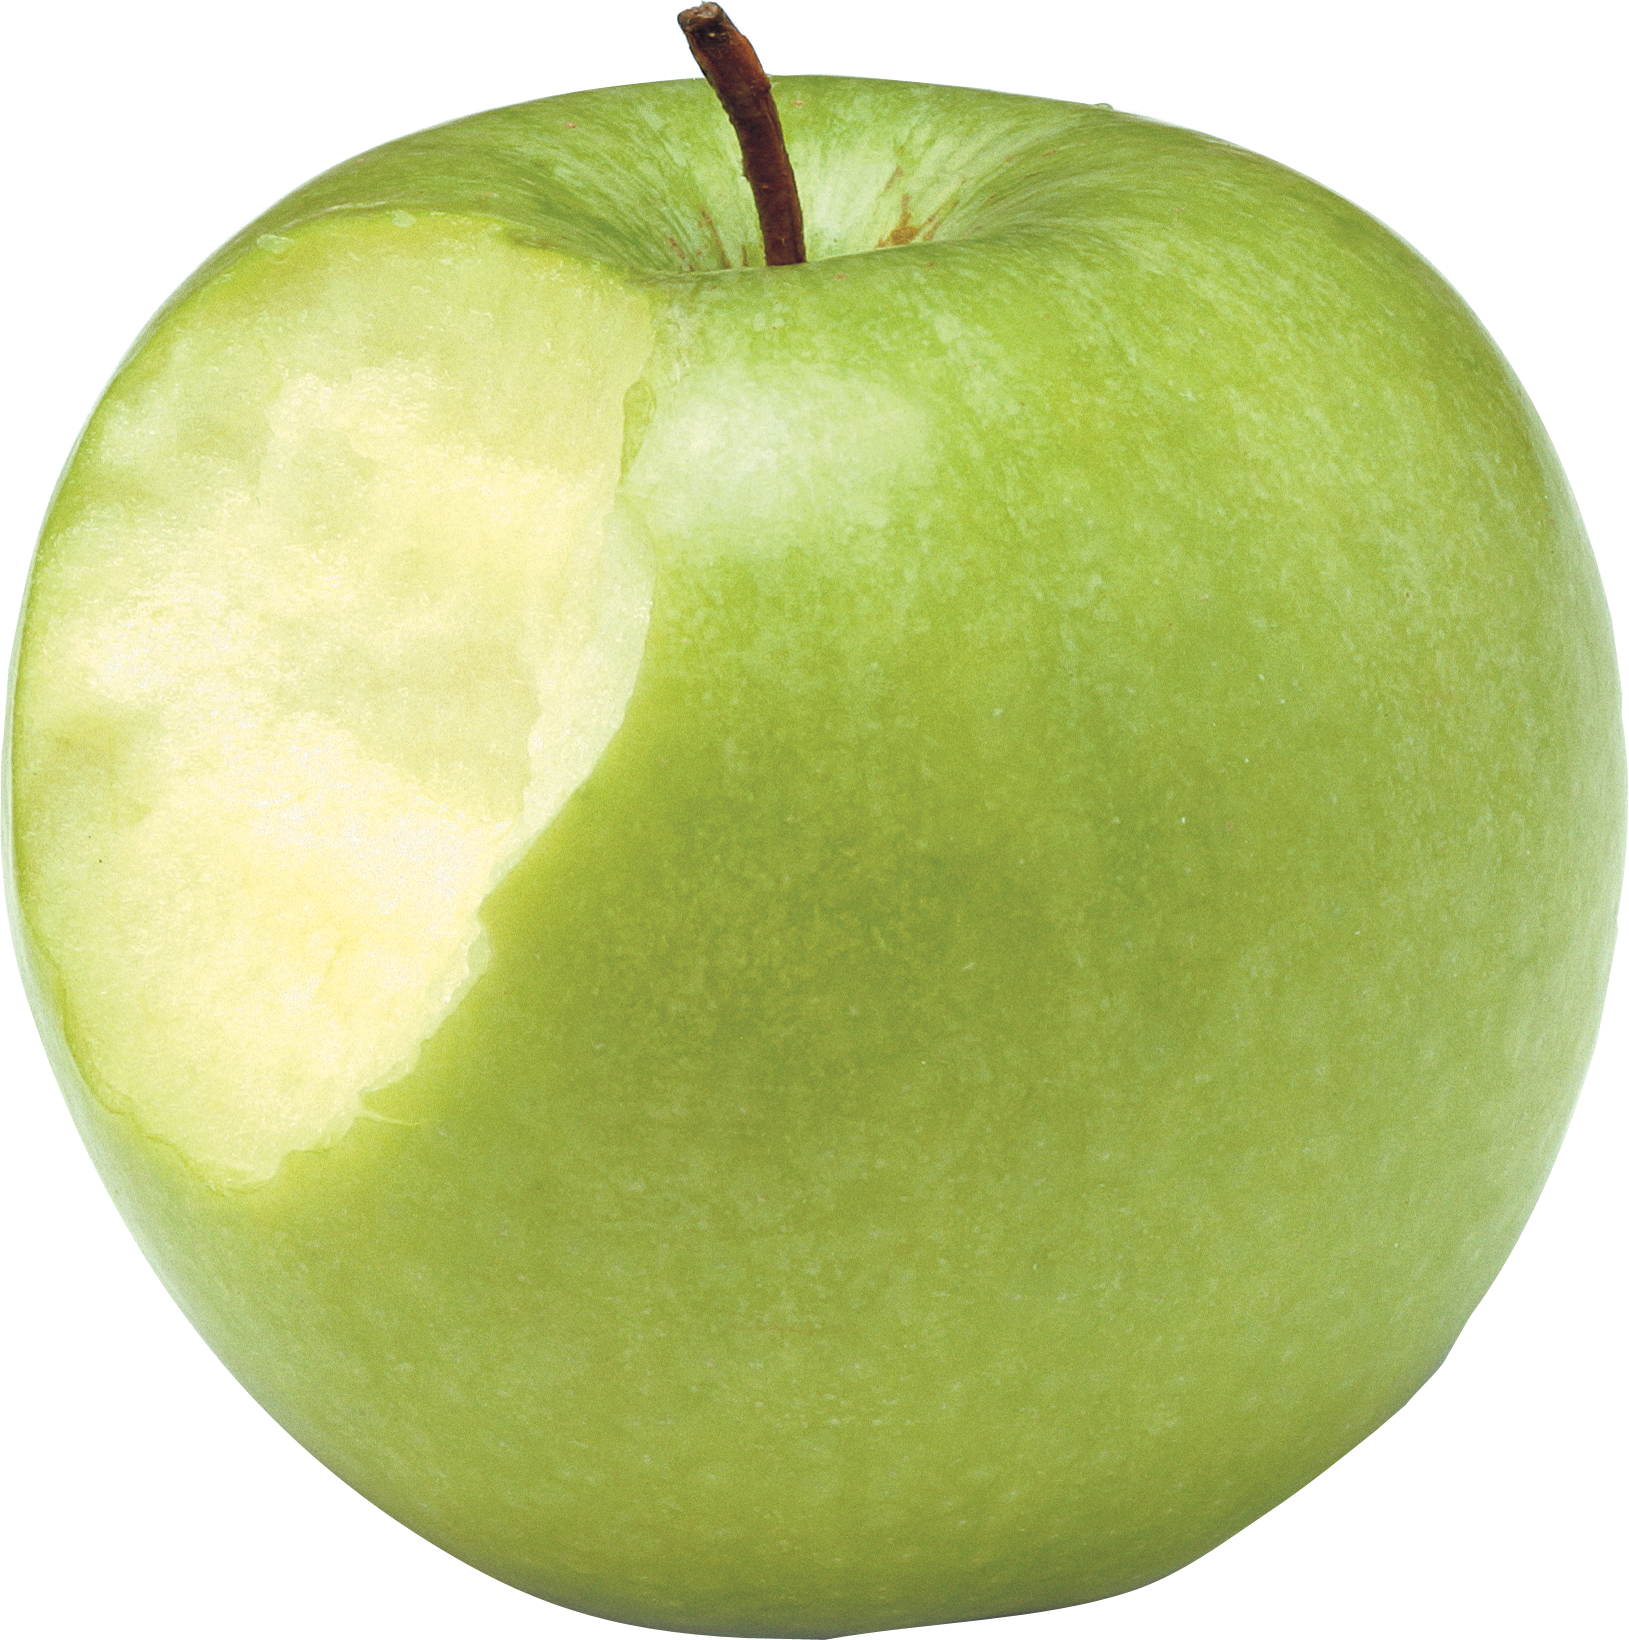 Pear clipart bitten. Apple png images free